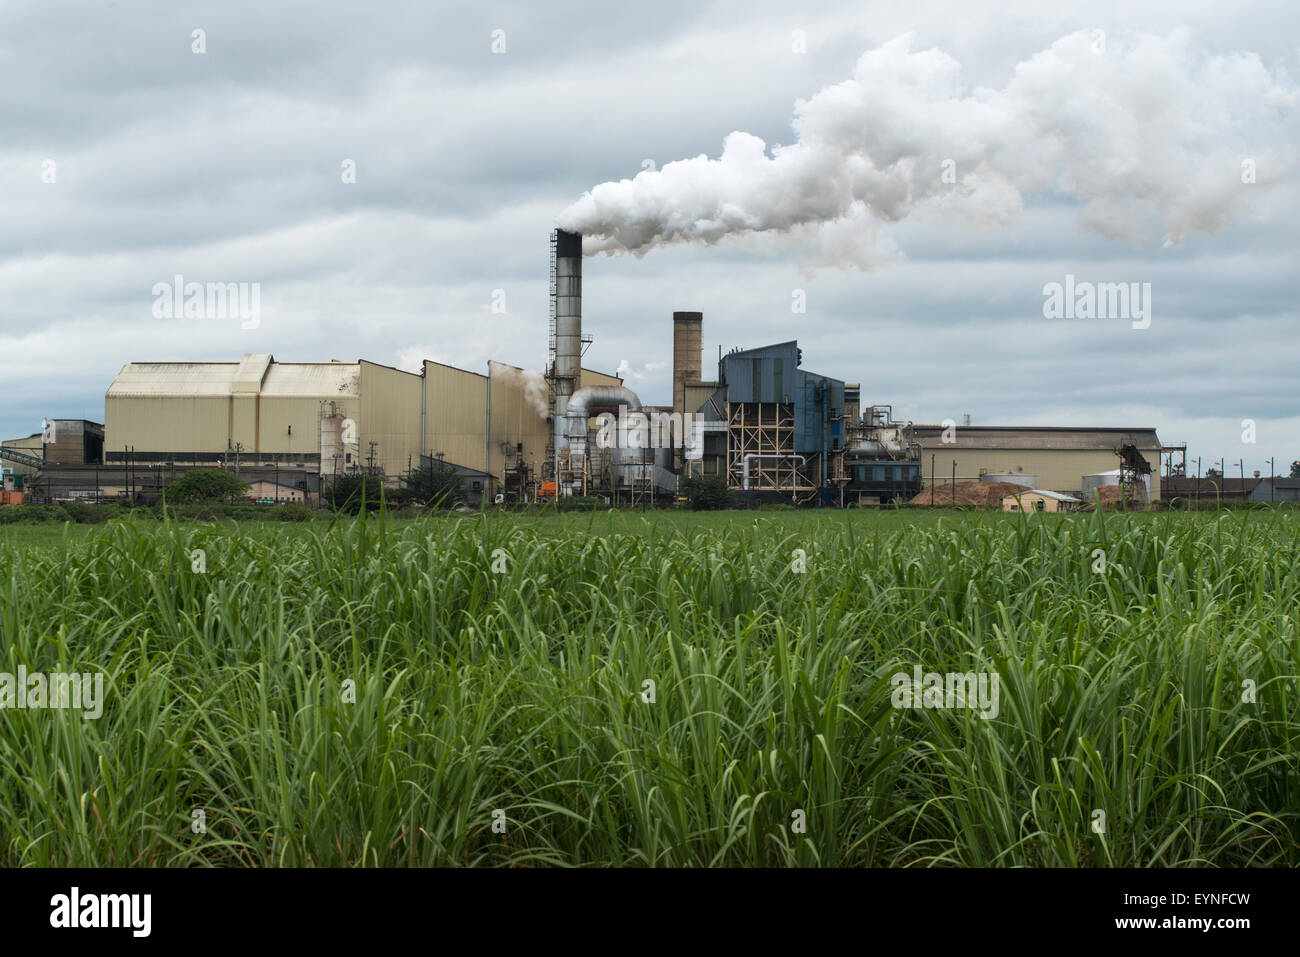 Sugar mill and sugar cane field, Mhlume, Swaziland - Stock Image